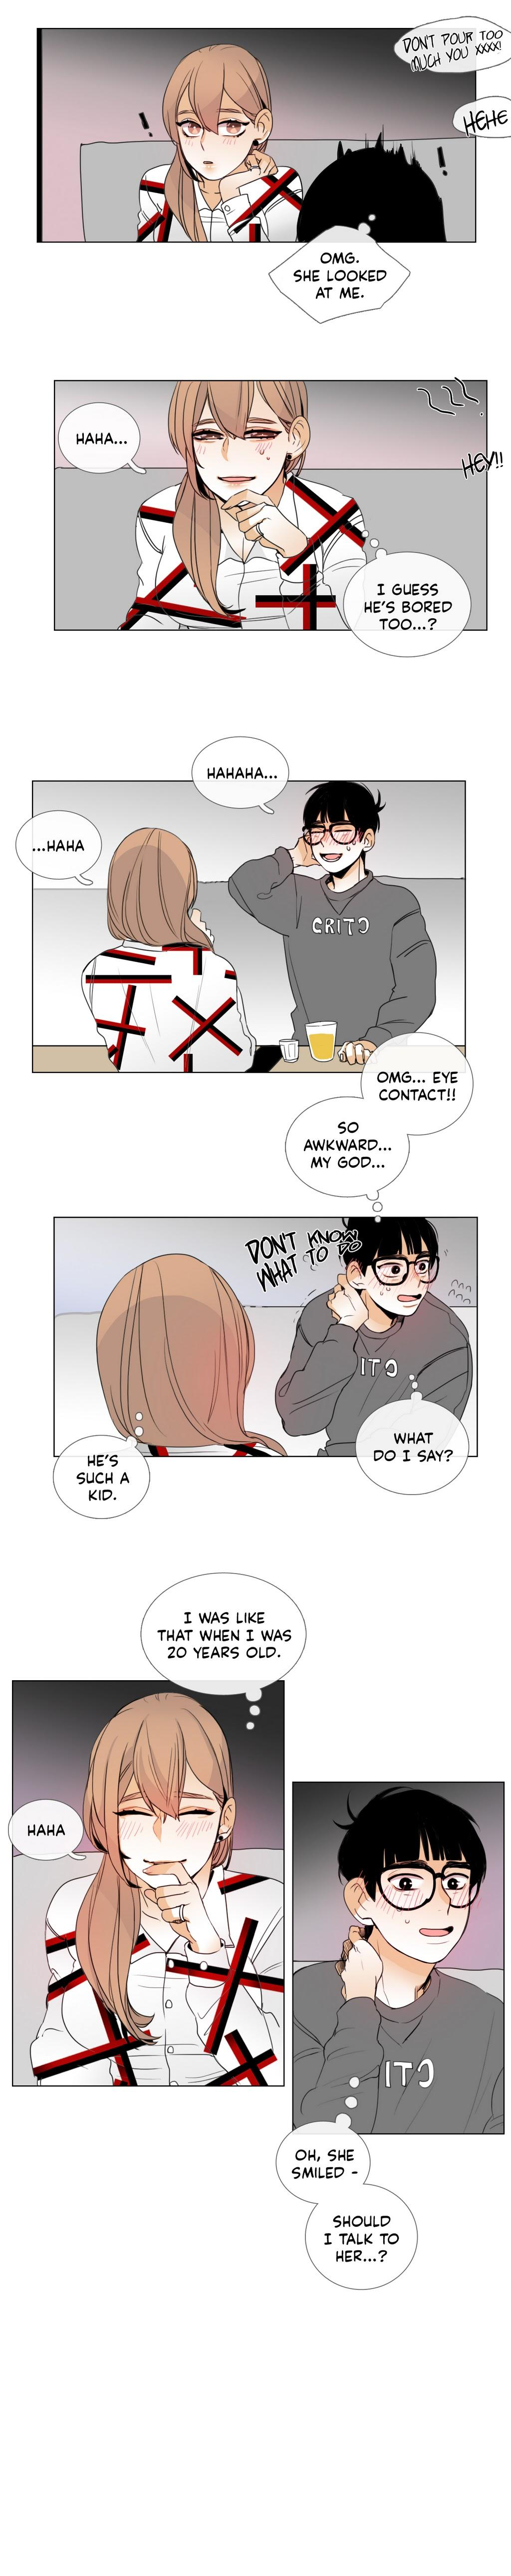 Talk To Me Ch.1-38 119